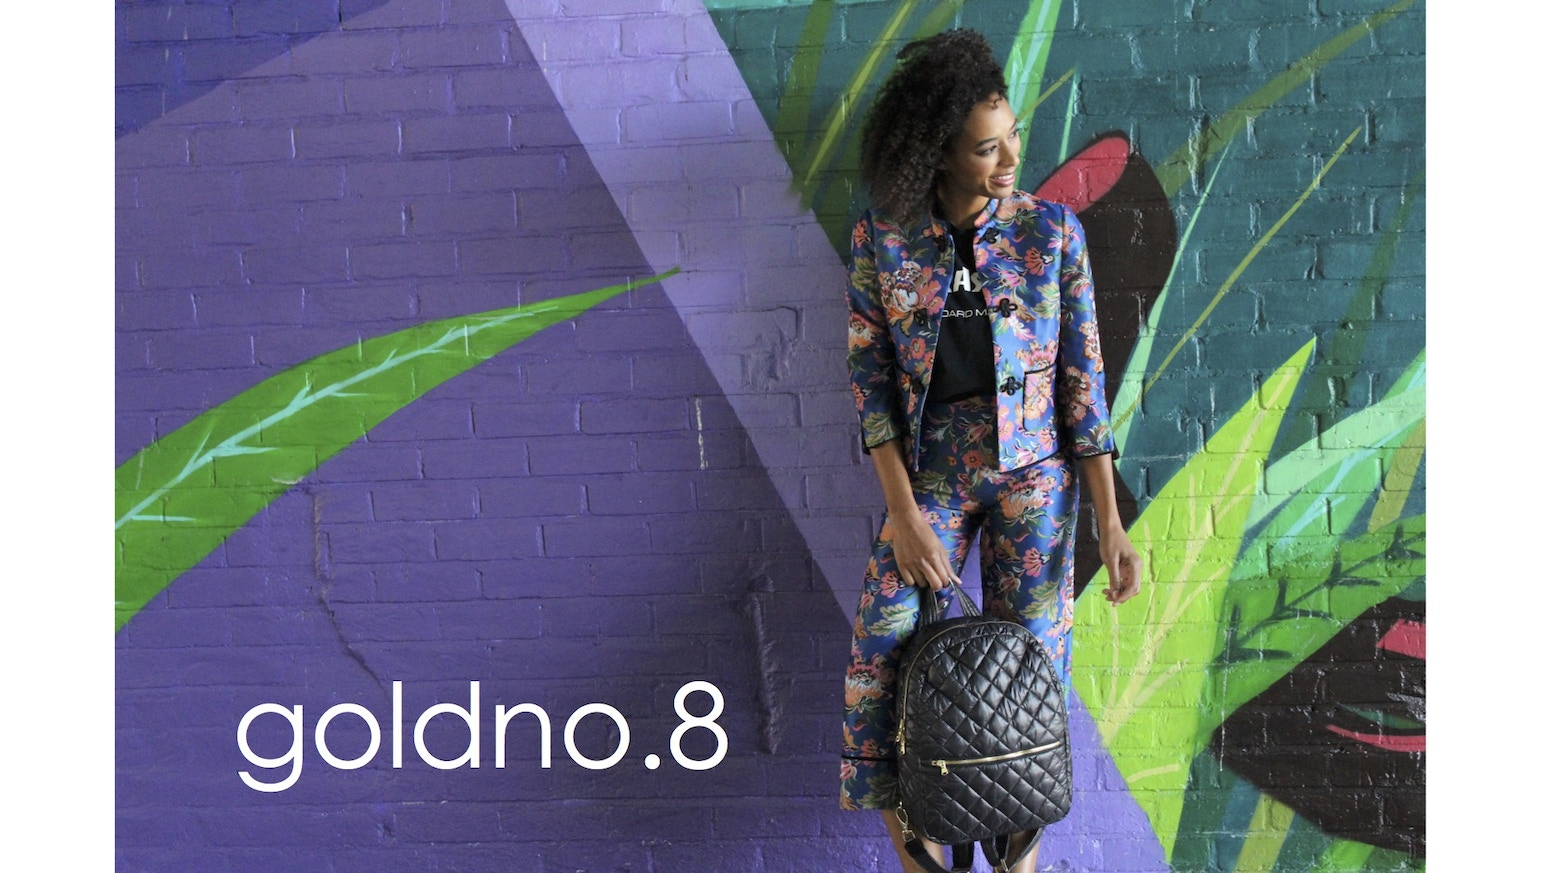 goldno.8 allows you to be the designer of your bag.  Pick each component and build a bag that reflects your own unique style.